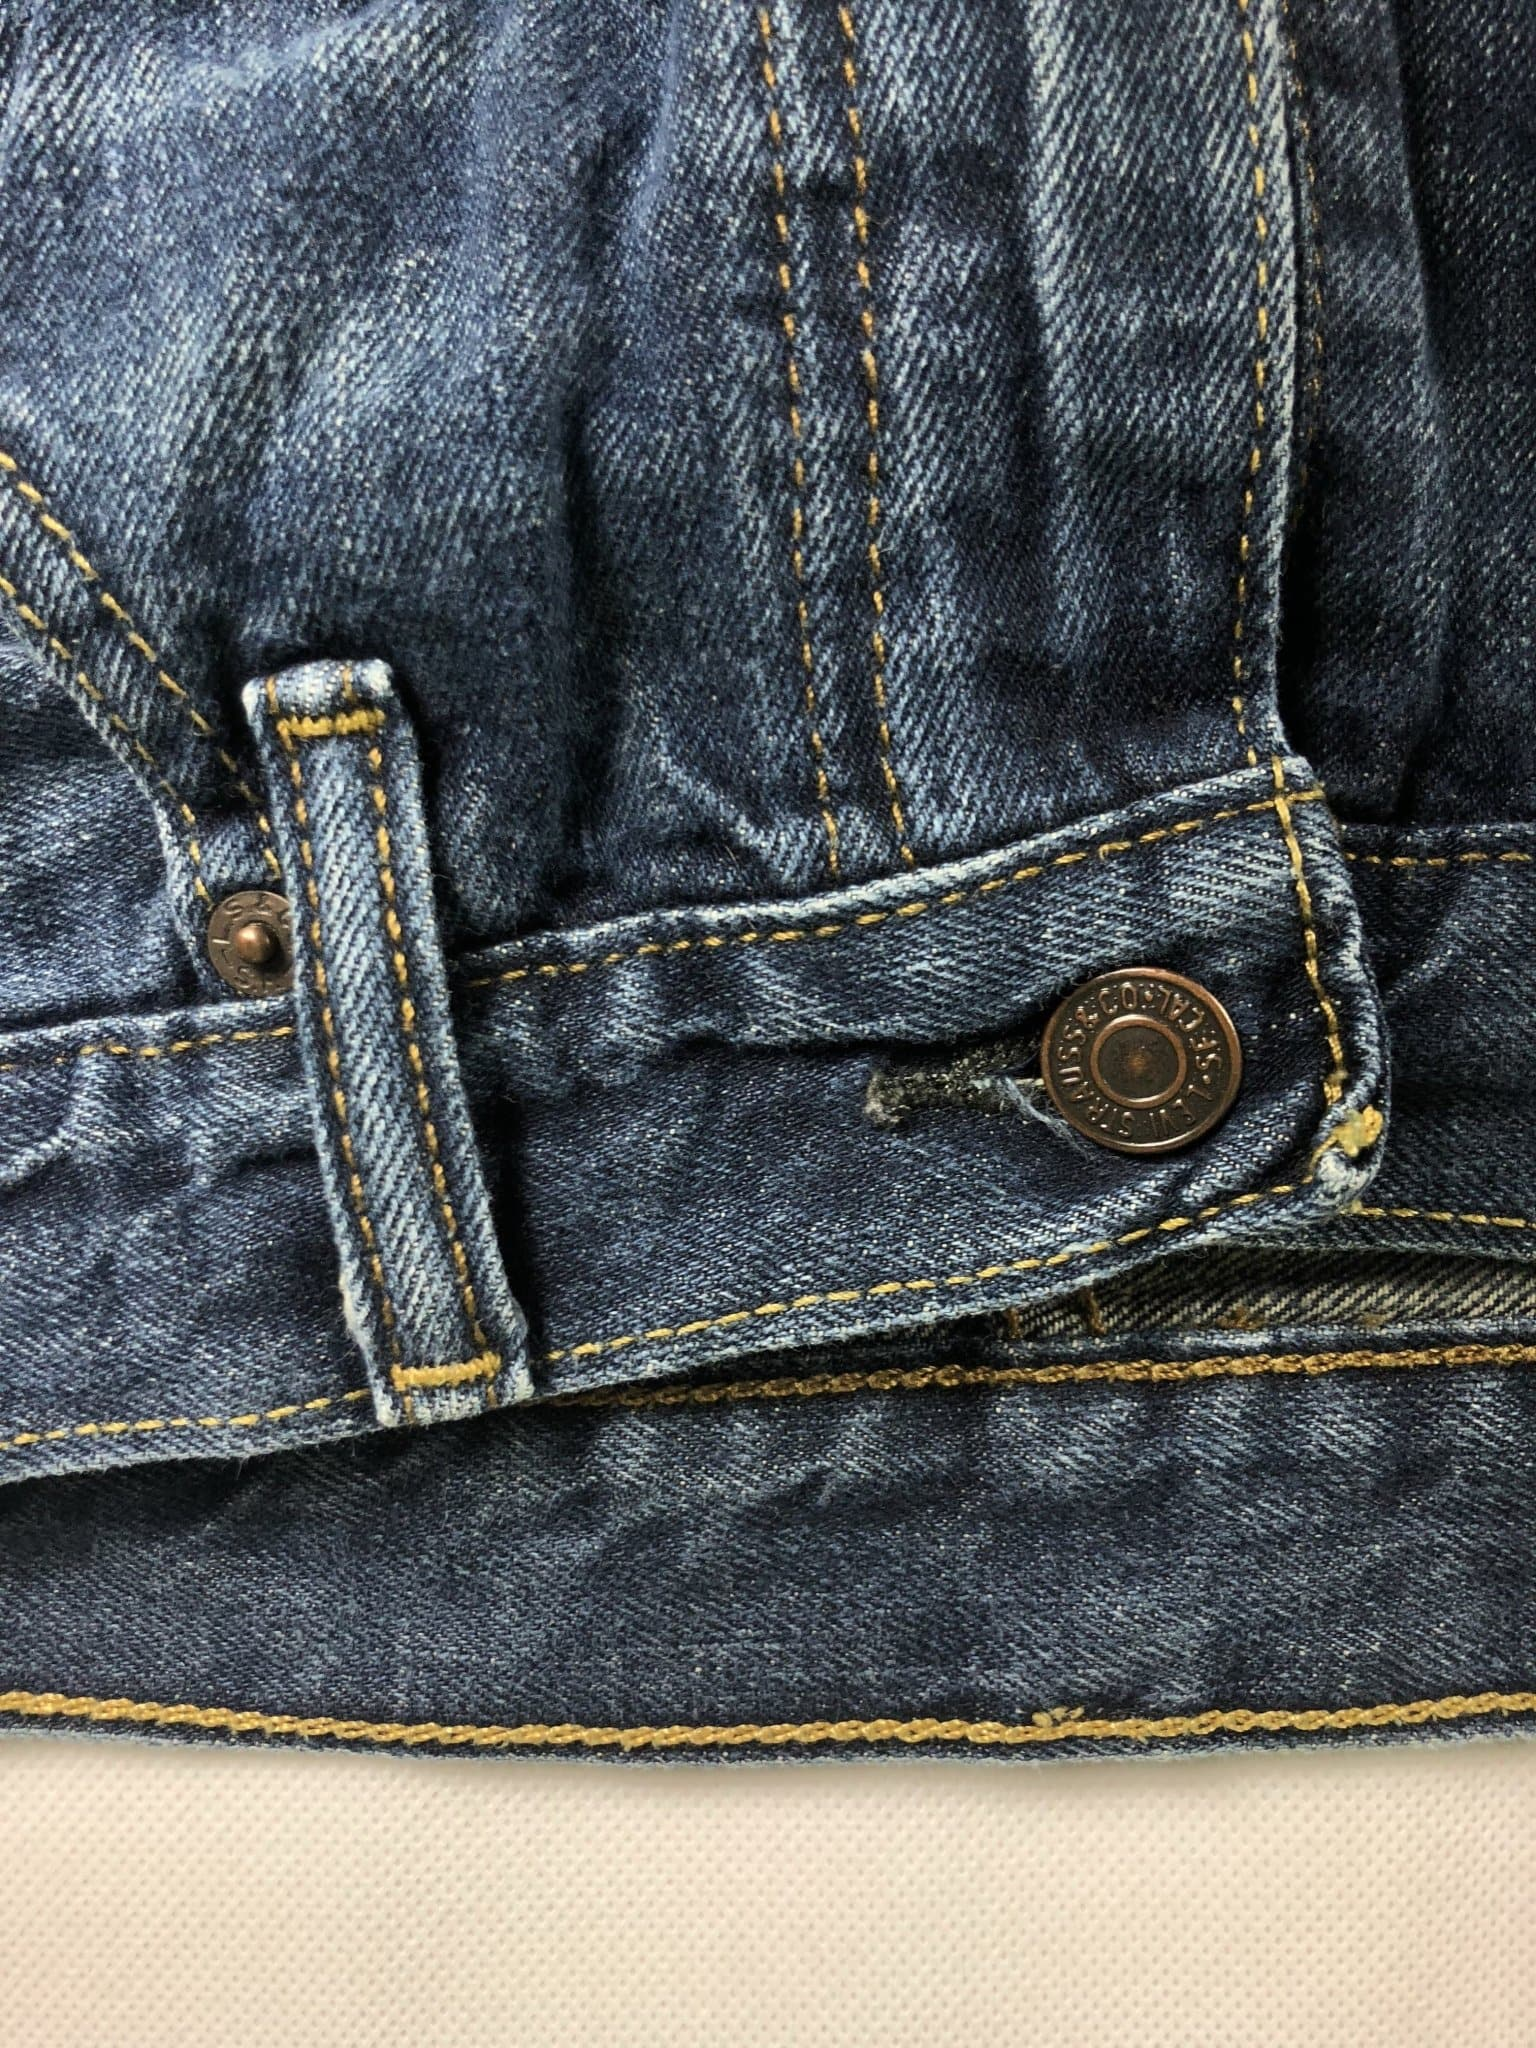 Vintage Levi's 569 Jeans W32 L32 (Z21) - Discounted Deals UK